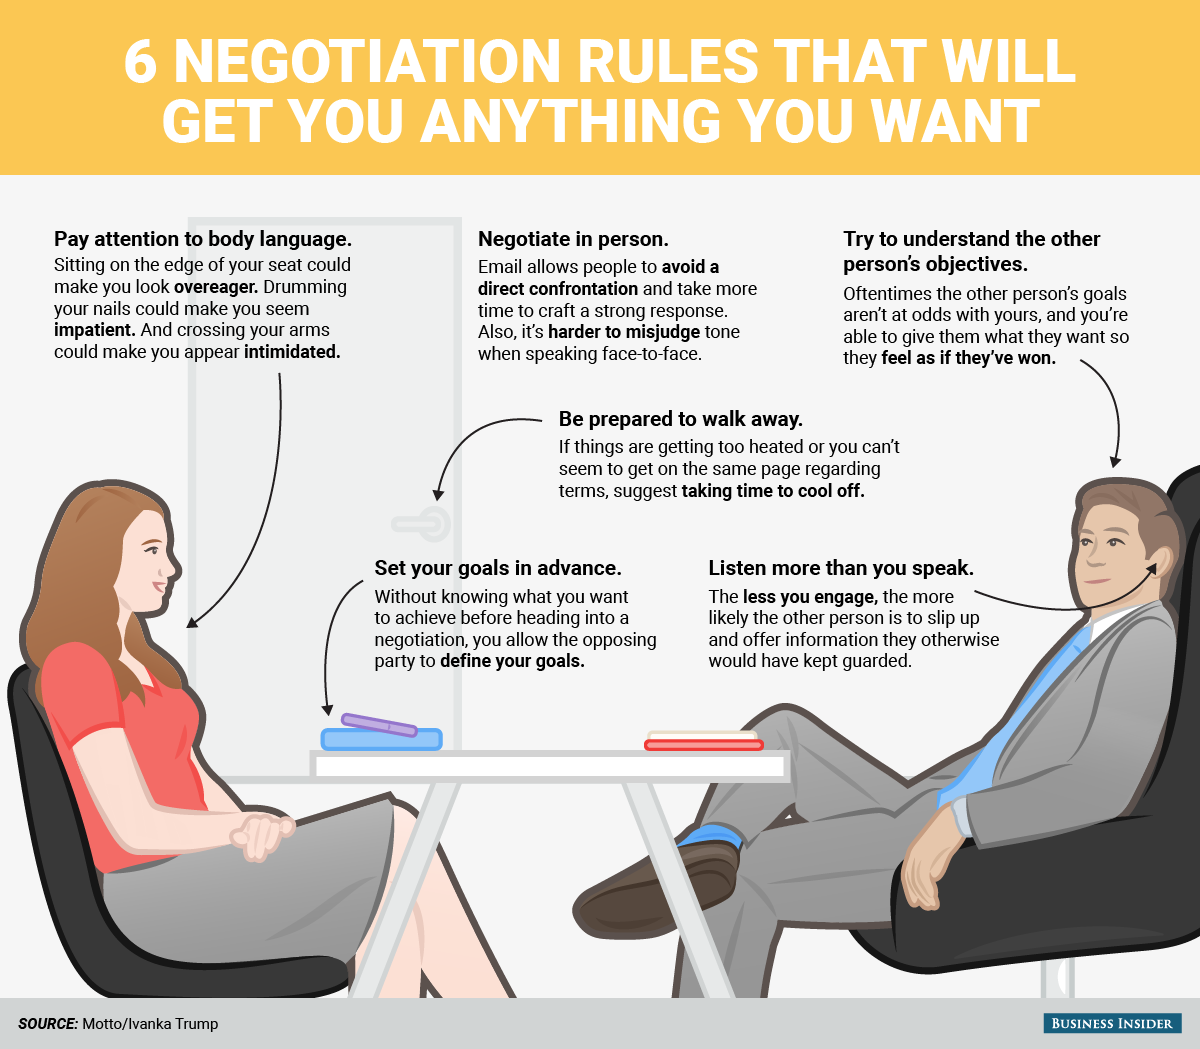 These 6 negotiation rules can get you anything you want